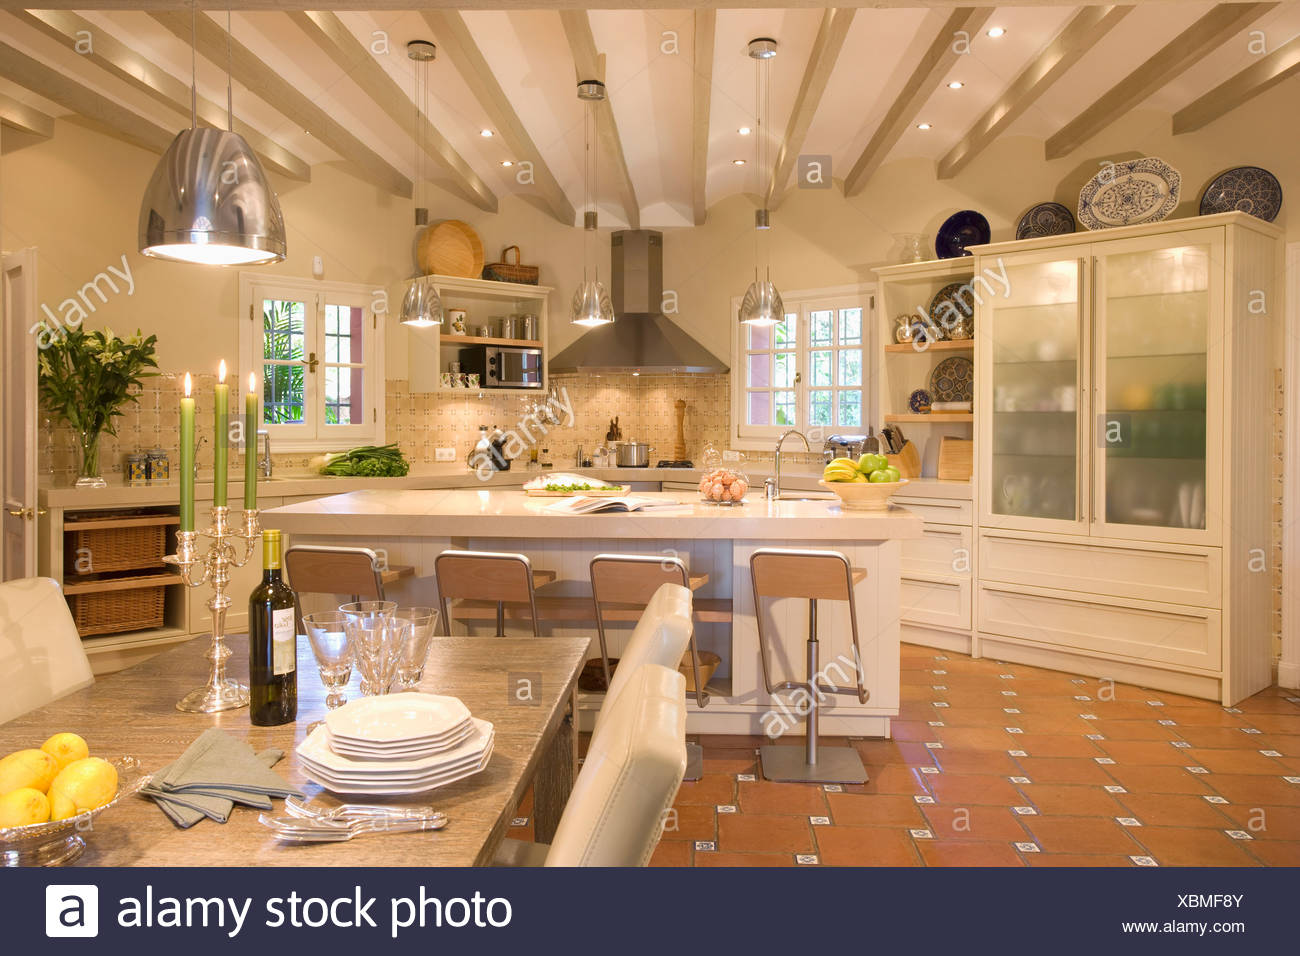 Large Openplan Kitchen Dining Room With Glass Fronted Cupboard Breakfast Bar And Pendant Light Above Table